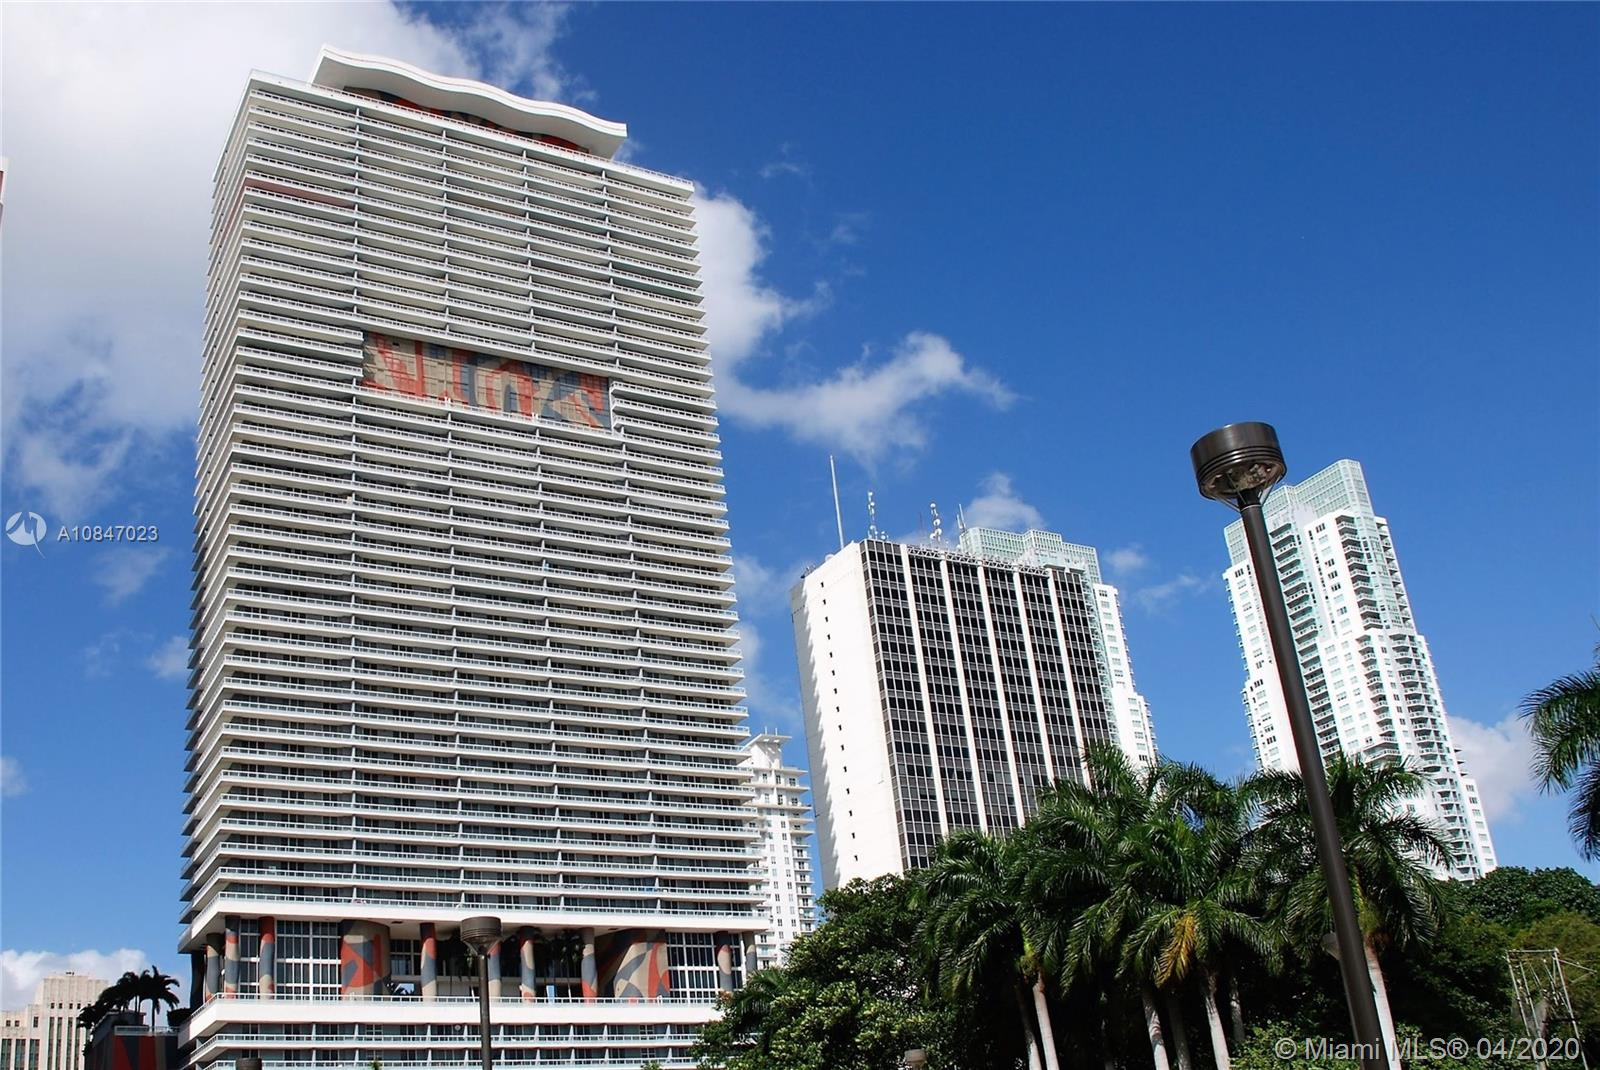 Location, location, location. Nearby to AAA Arena, Jorge Perez Museum and bars all along Biscayne Blvd. First class amenities which include an Olympic size heated pool, party rooms, gym with a Pilates room, 24 hour concierge and valet parking.